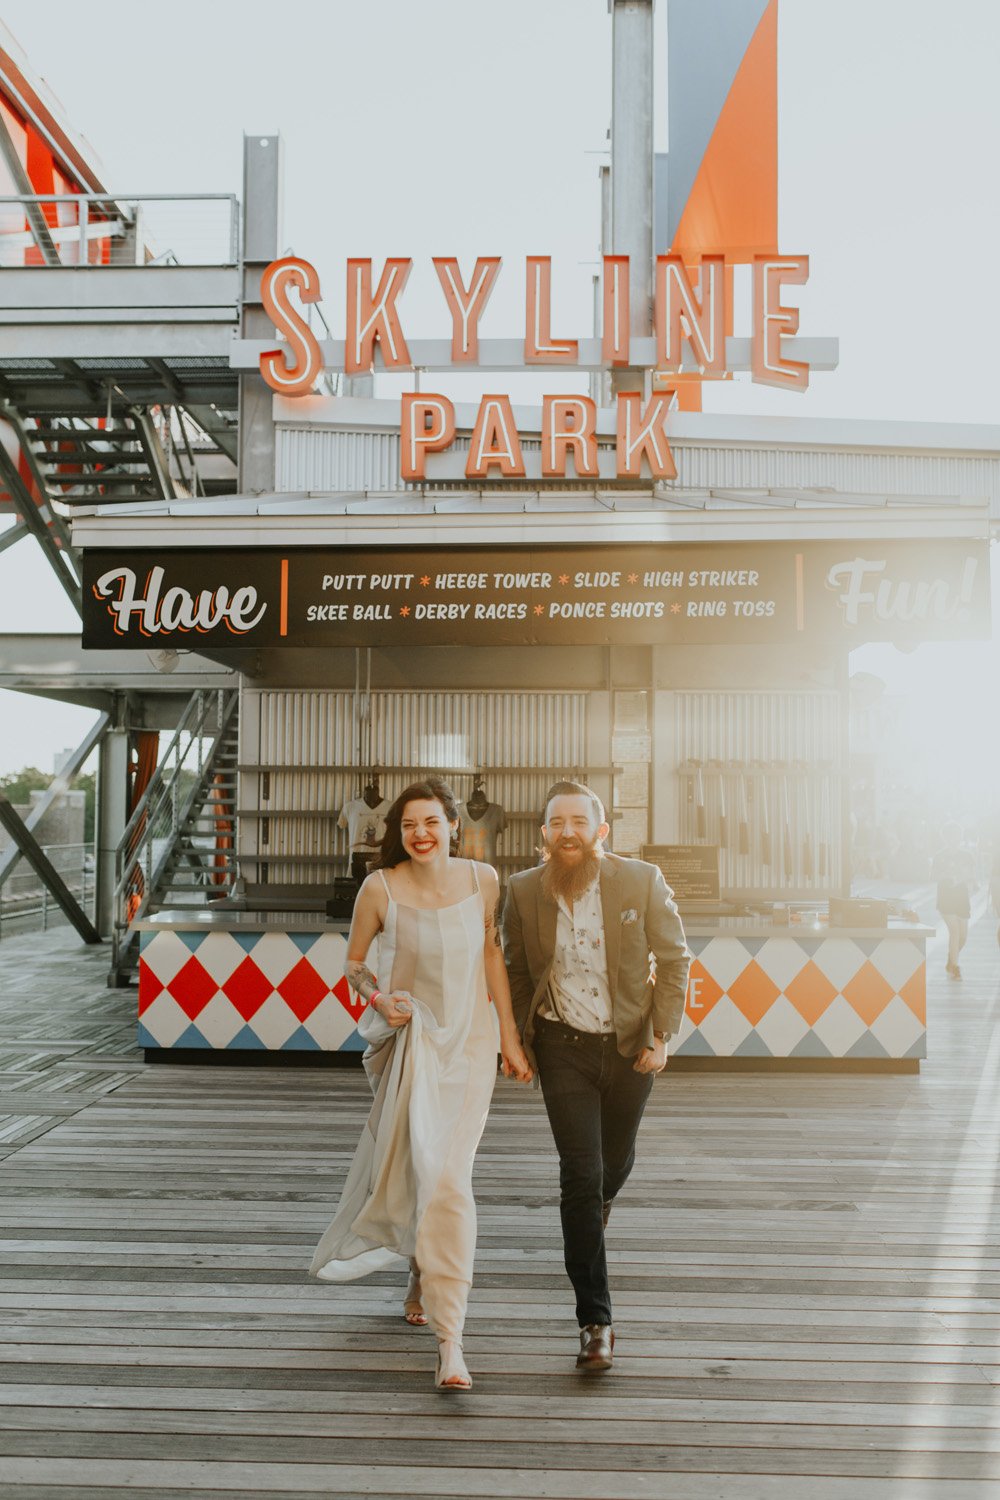 skyline park photo session atlanta wedding photographer1002.jpg